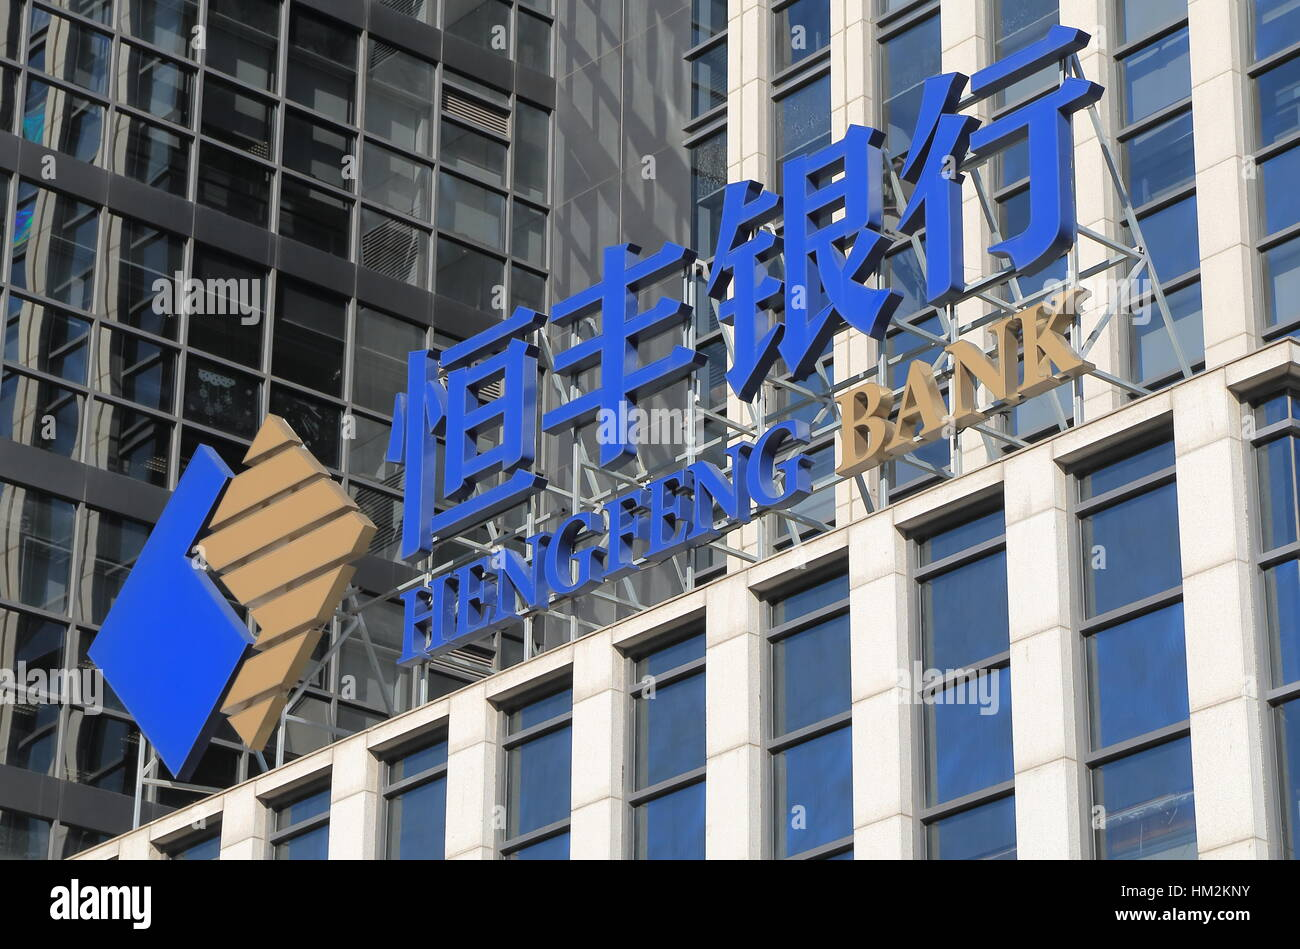 Hengfeng bank. Hengfeng bank is a Chinese bank also known as Evergrowing Bank. Stock Photo